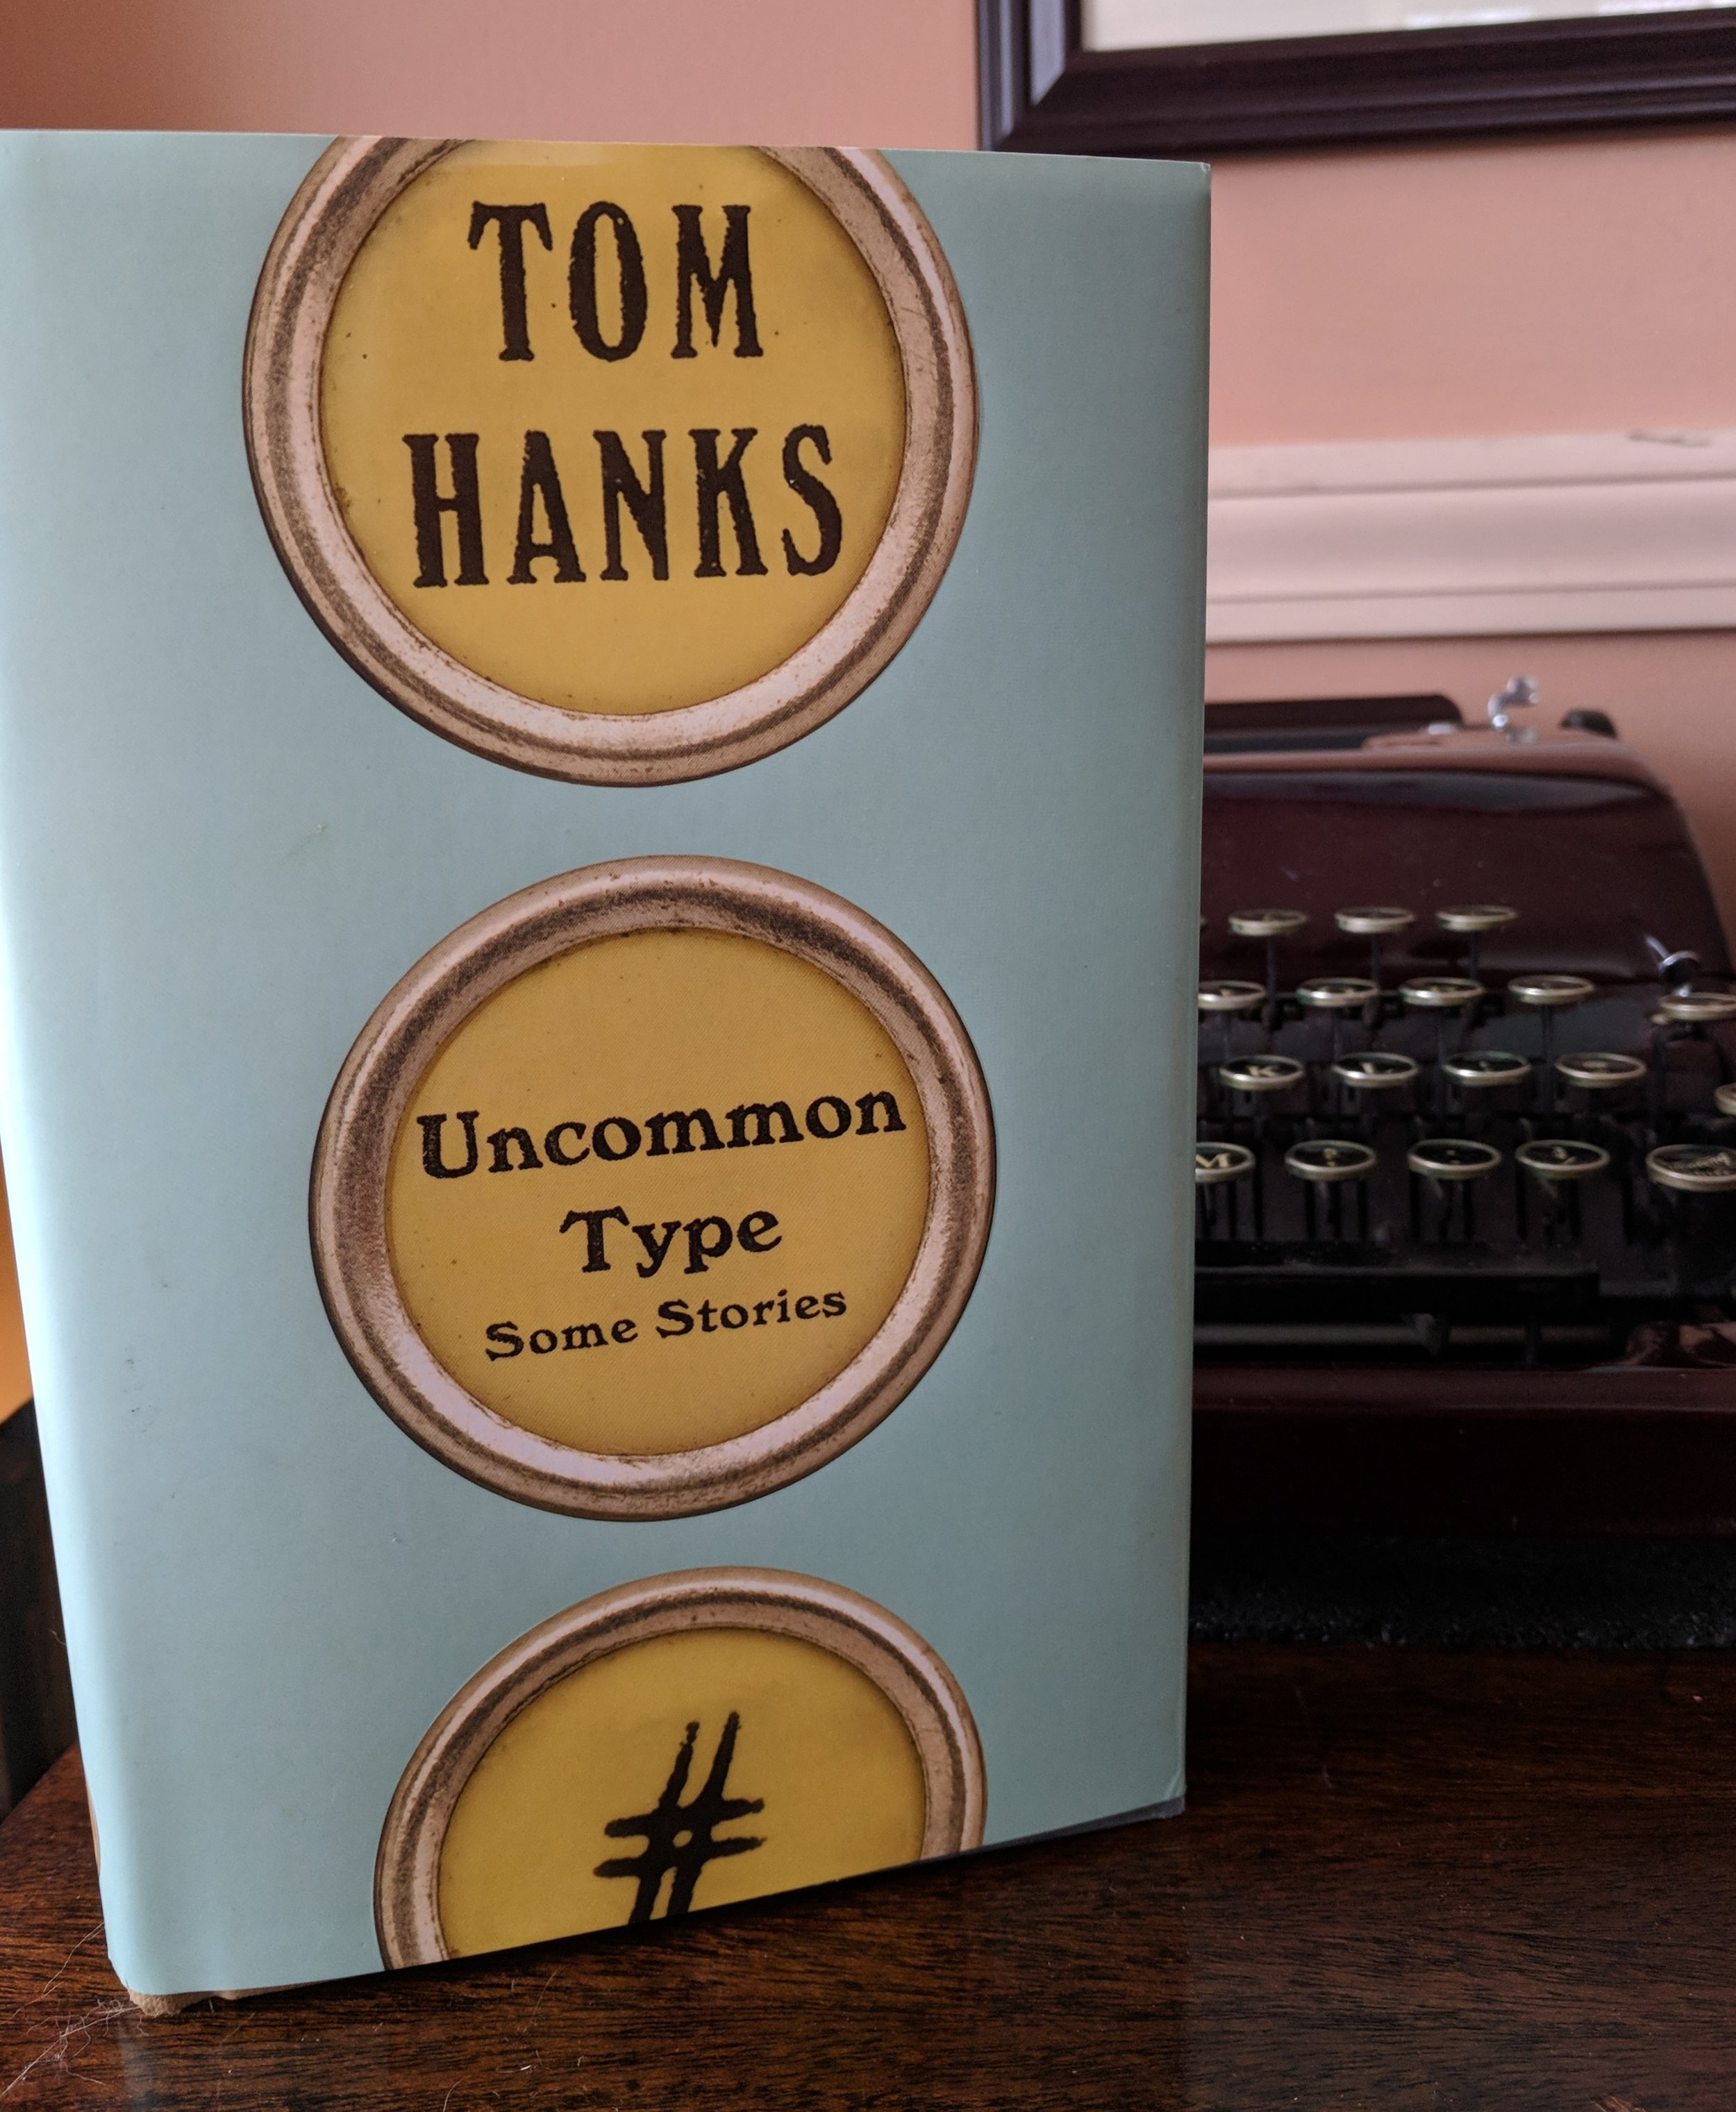 Tom HanksUncommon Type - These are good stories. They are weird stories too and it's the weirdness that I find most interesting. What's weird? There are more happy endings than tragic ones and yet it does not diminish the stories. It's not as if they had unhappy endings, screen-tested poorly, and were rewritten at the studio's insistence. At least, I don't think any of that went on. Instead, I think it was Nora Ephron's influence and Tom Hanks' character that brought this about. I'm grateful for whatever did it.It's good to be reminded that comedy (in the dramatic sense rather than ha-ha) can be as powerful as tragedy. Tom Hanks is a good writer and he likes typewriters even more than I do.